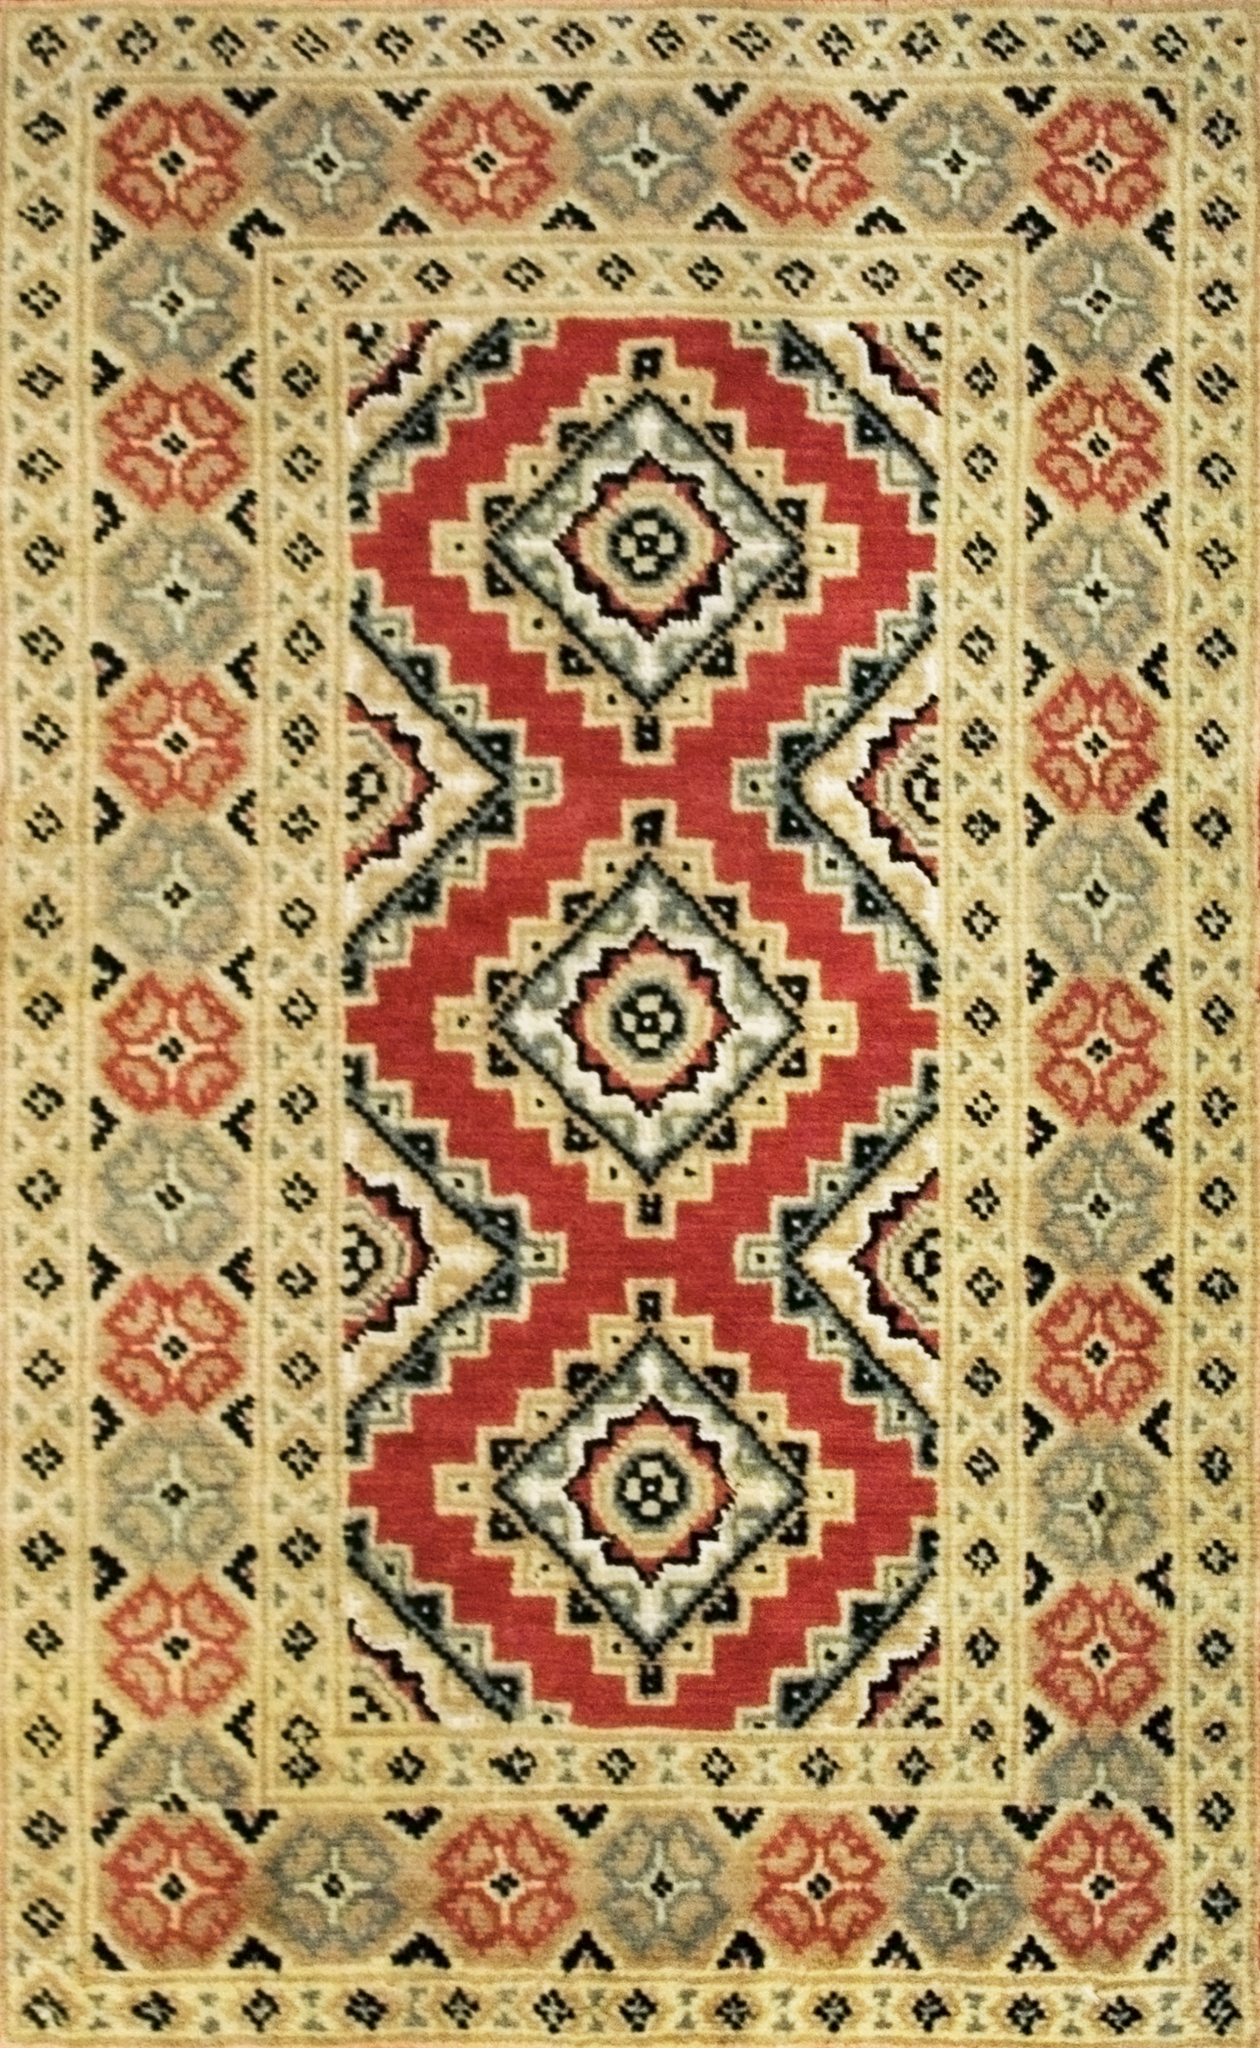 Ethnic Diamonds Rug.jpg